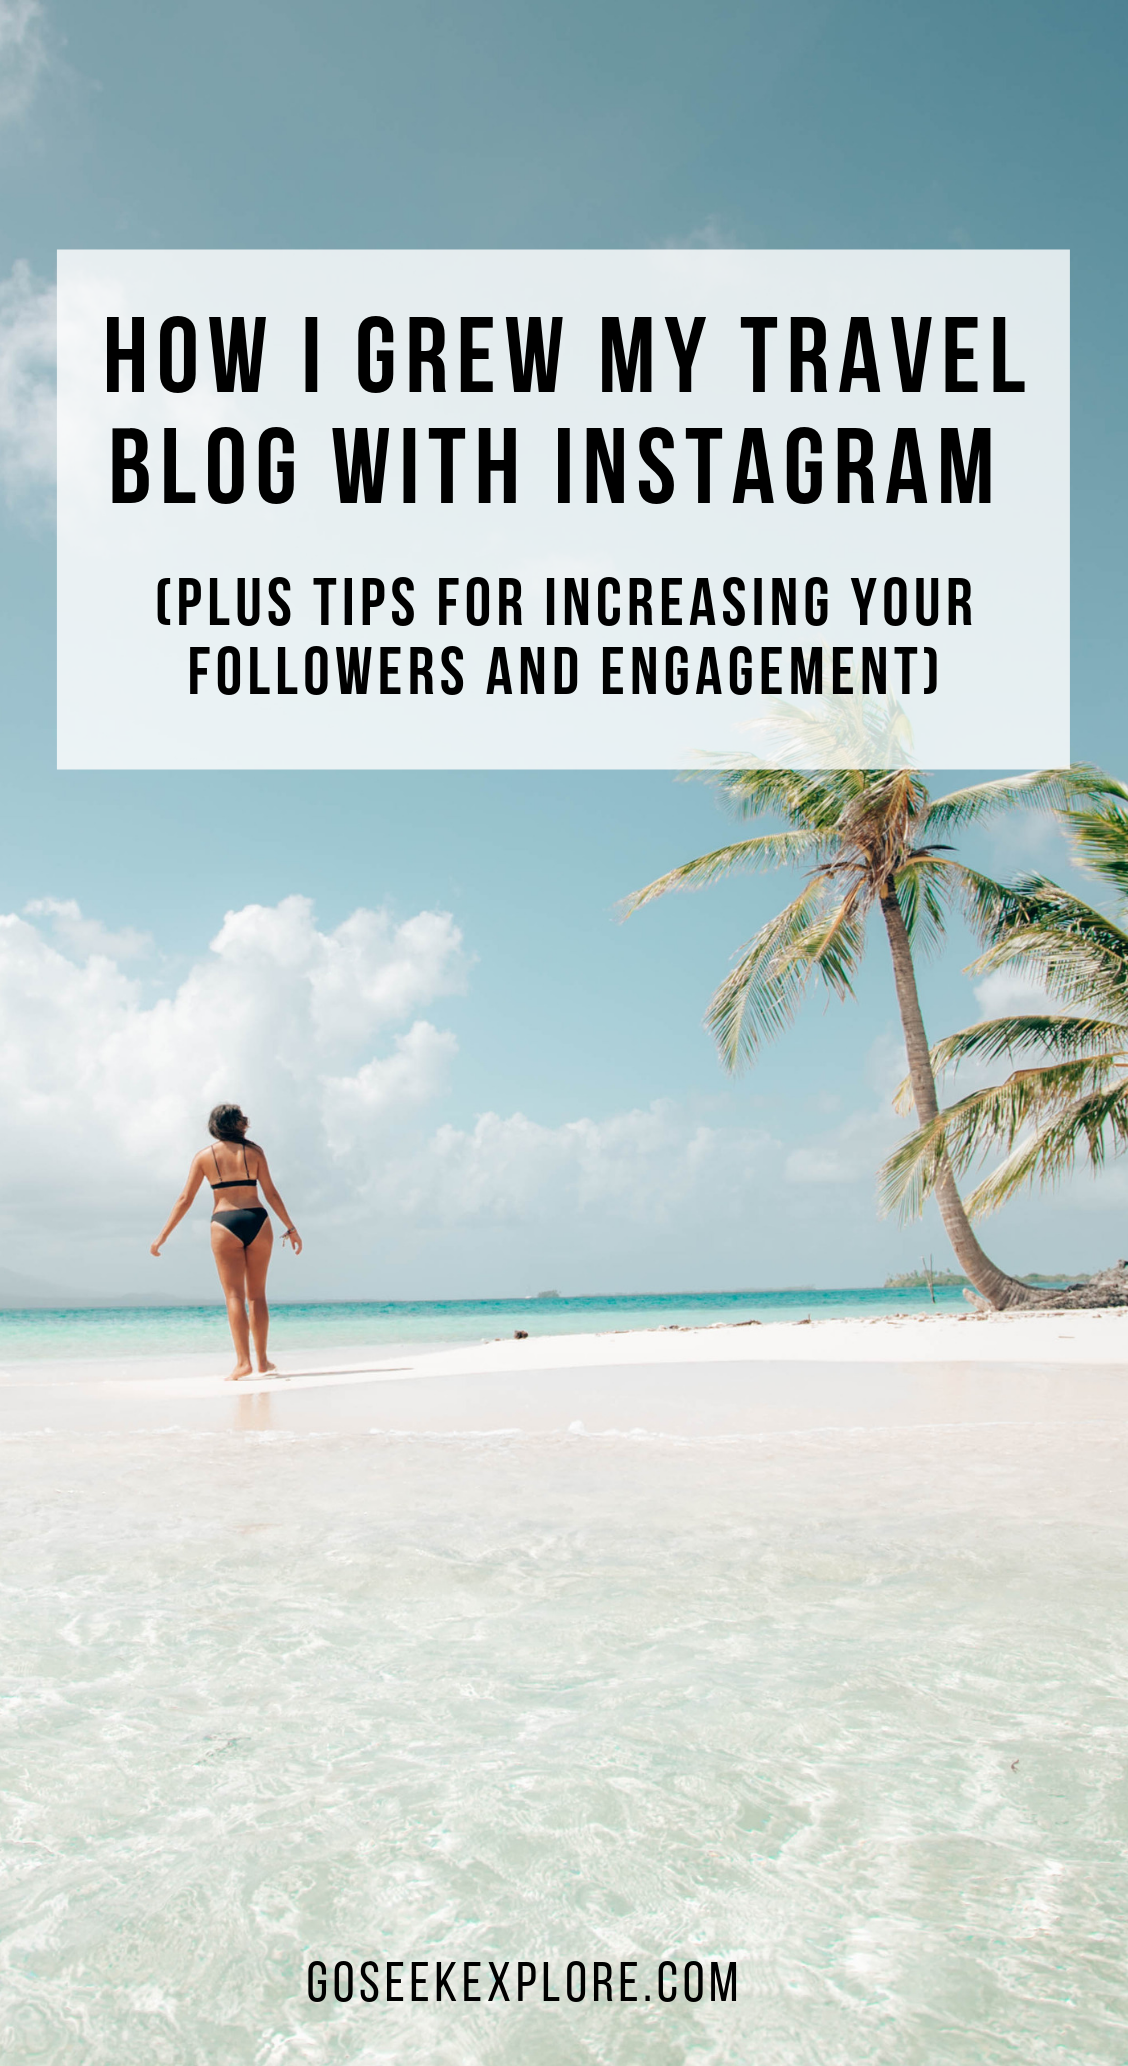 How I Grew My Travel Blog With Instagram (Plus Tips For Increasing Your Followers and Engagement).png